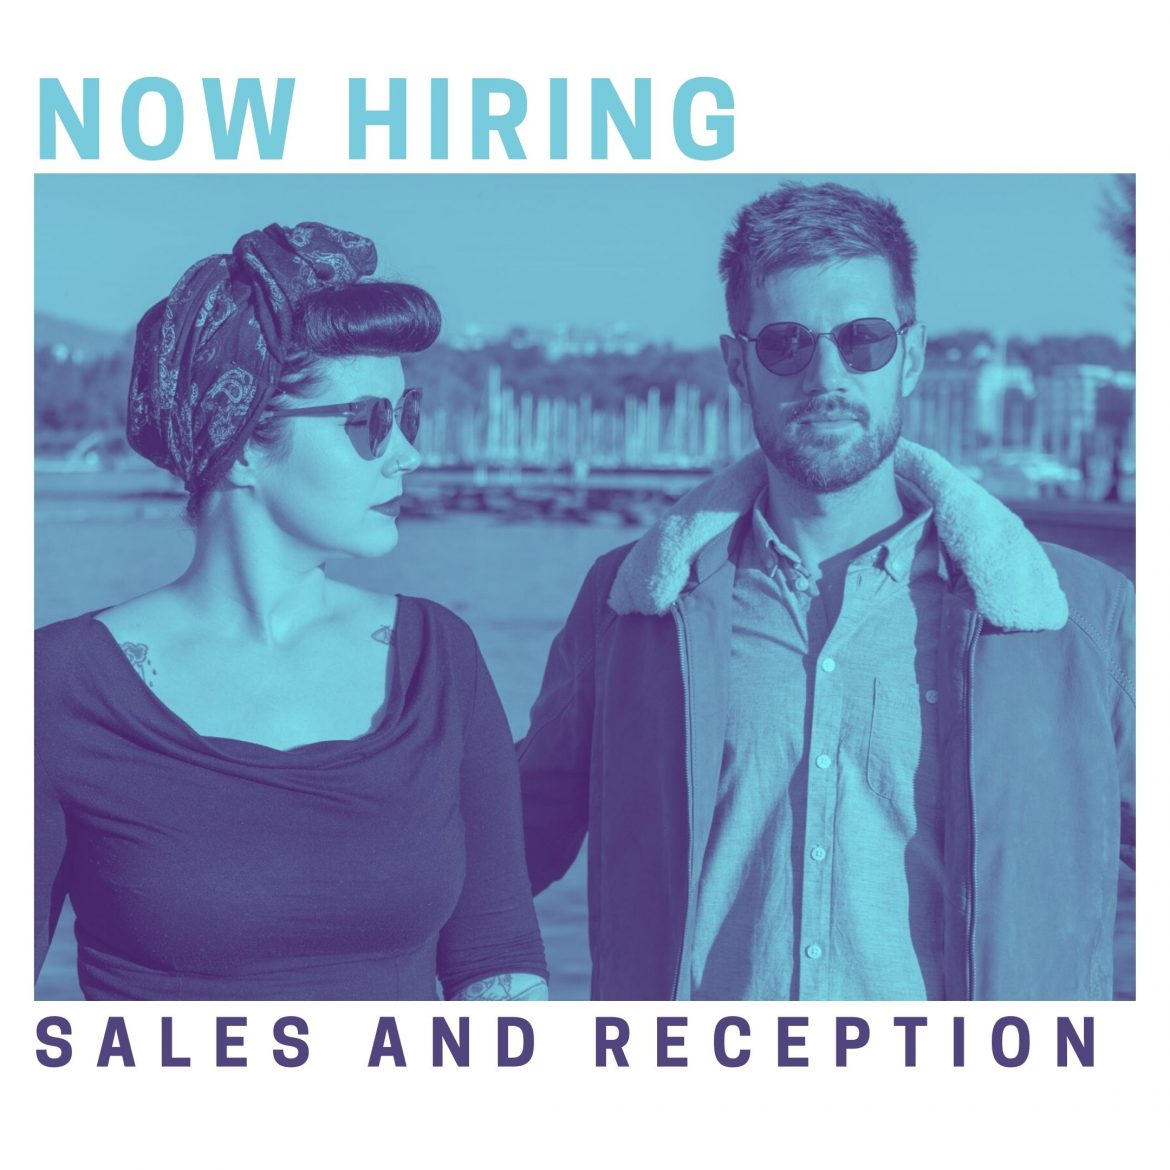 Hiring Reception and Sales